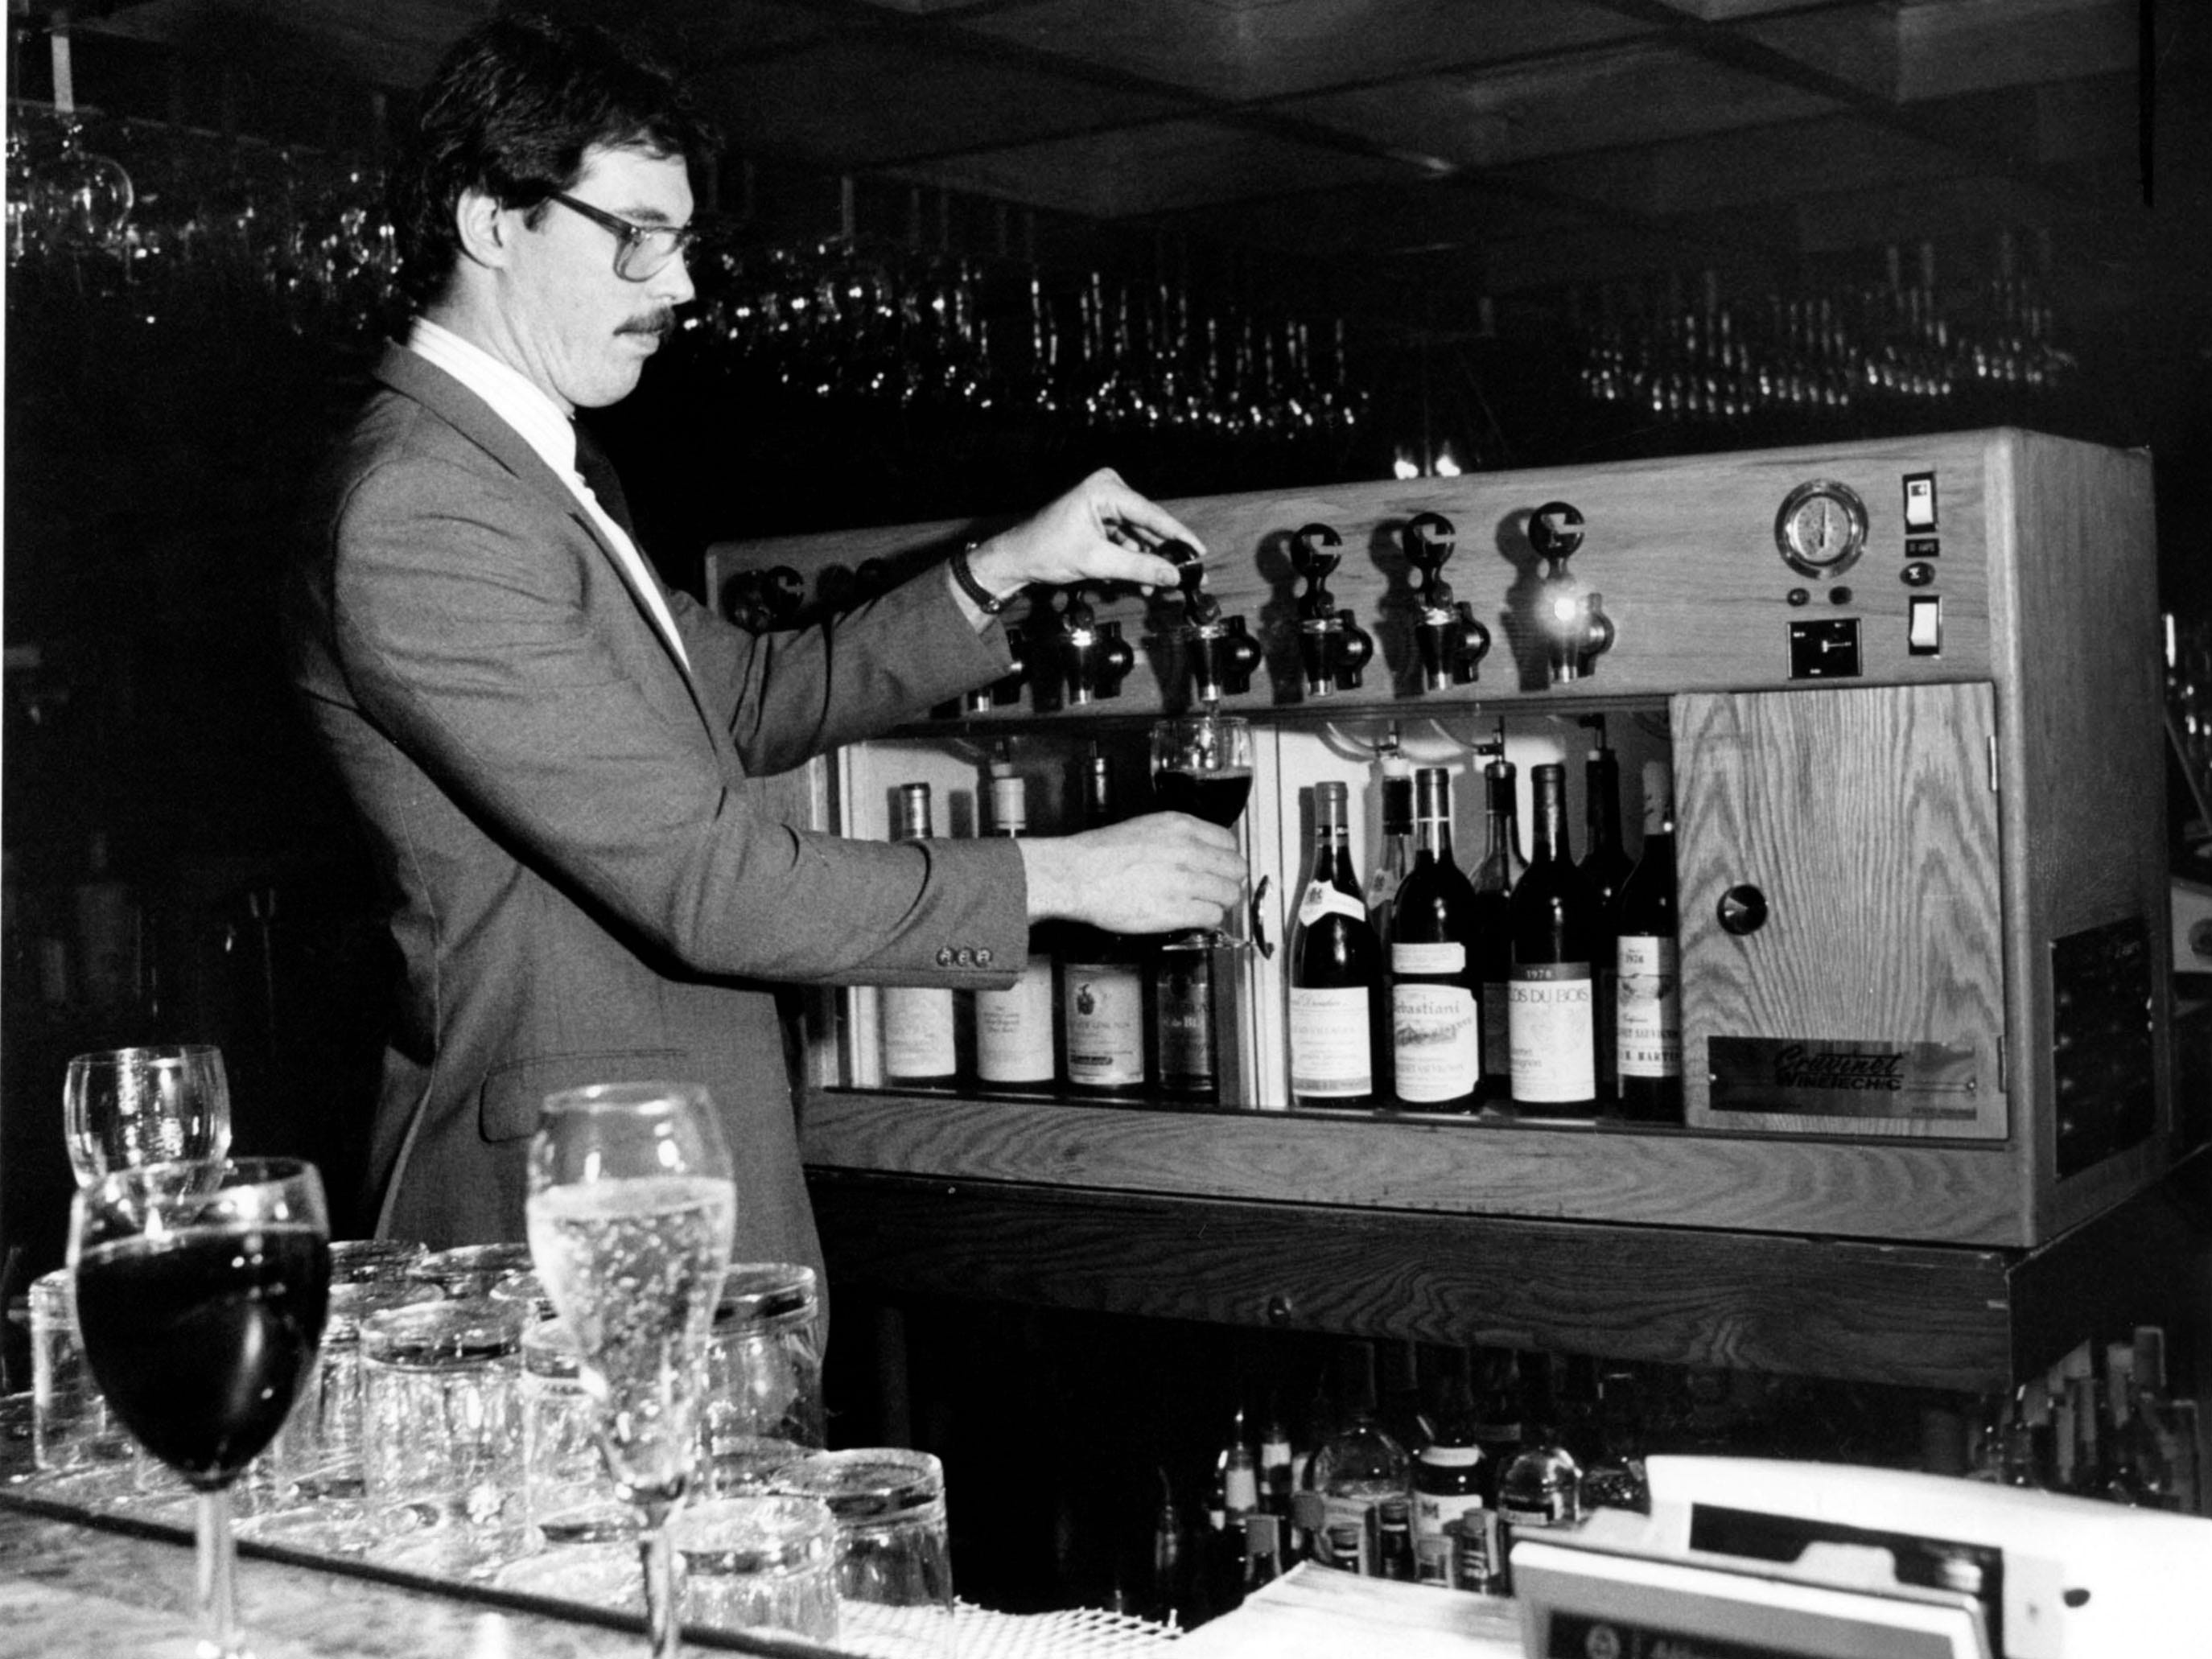 Dennis Cleary at the Regas Restaurant bar in 1984.